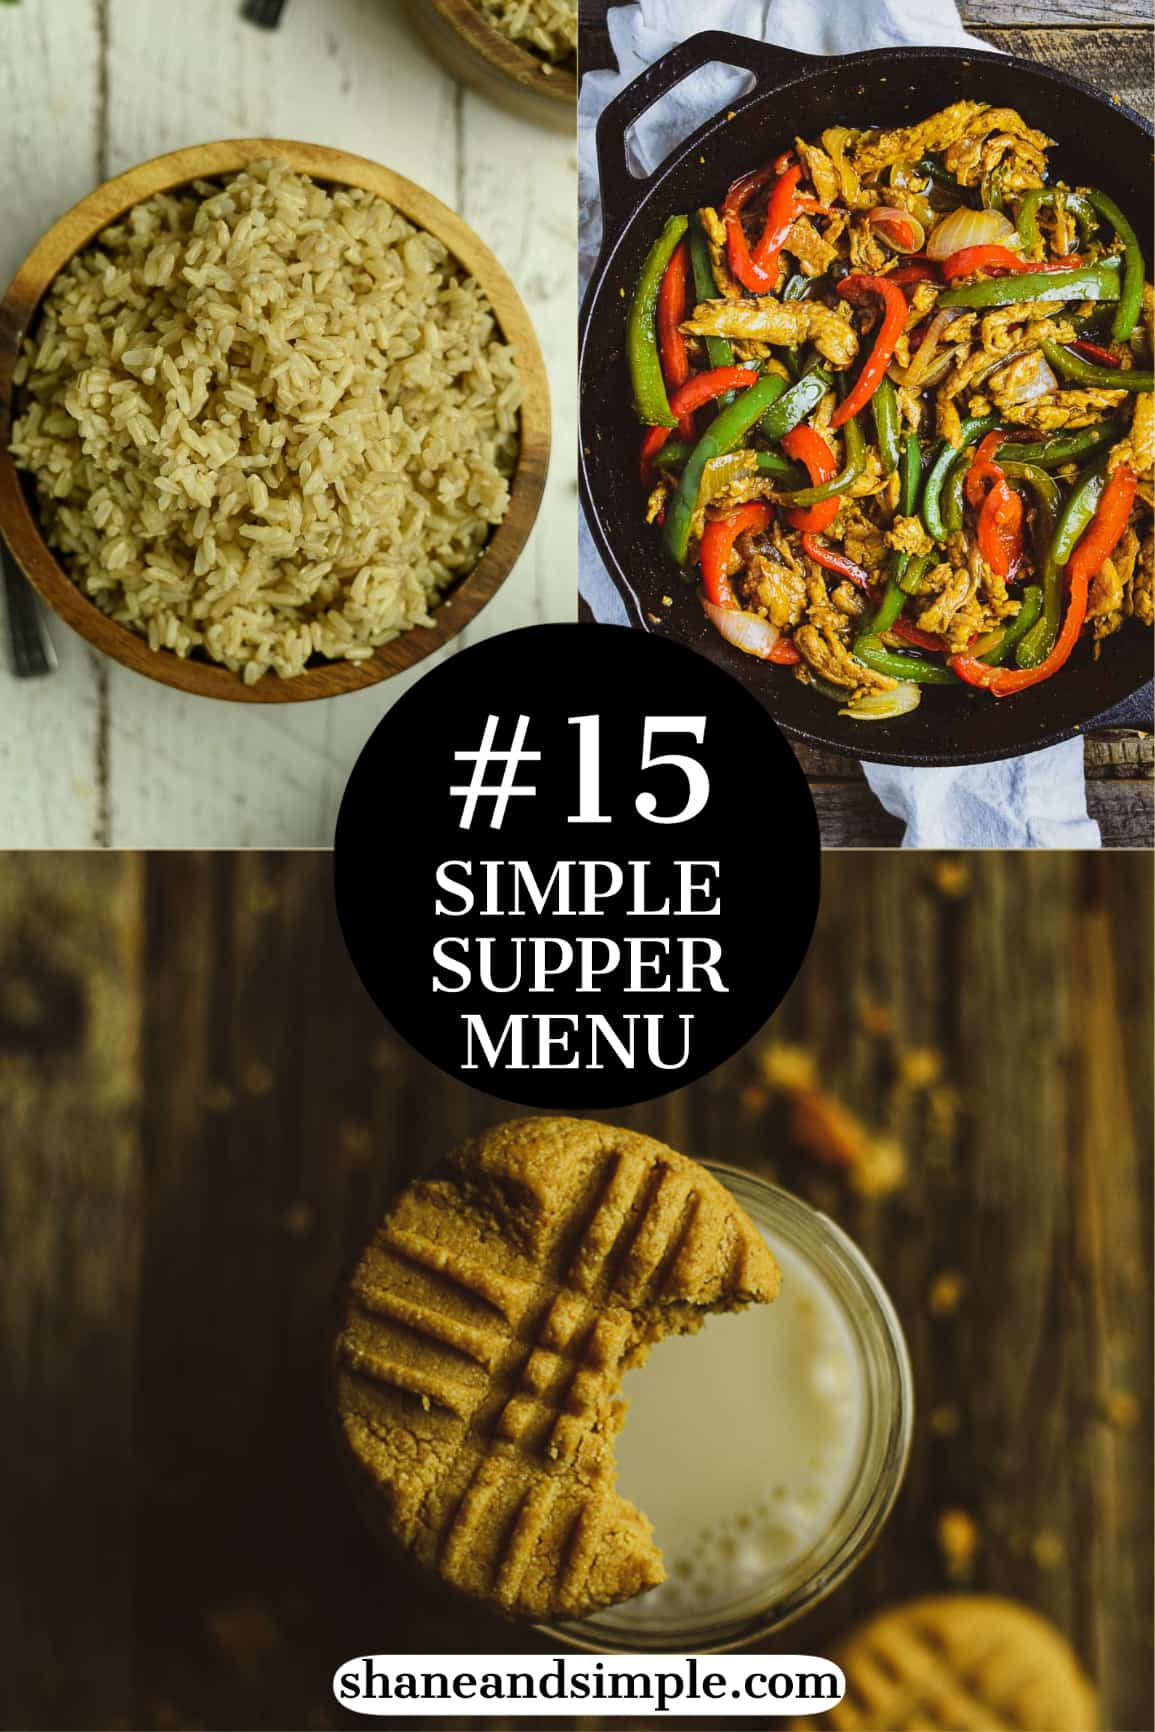 Simple supper menu 15 pinterest banner.